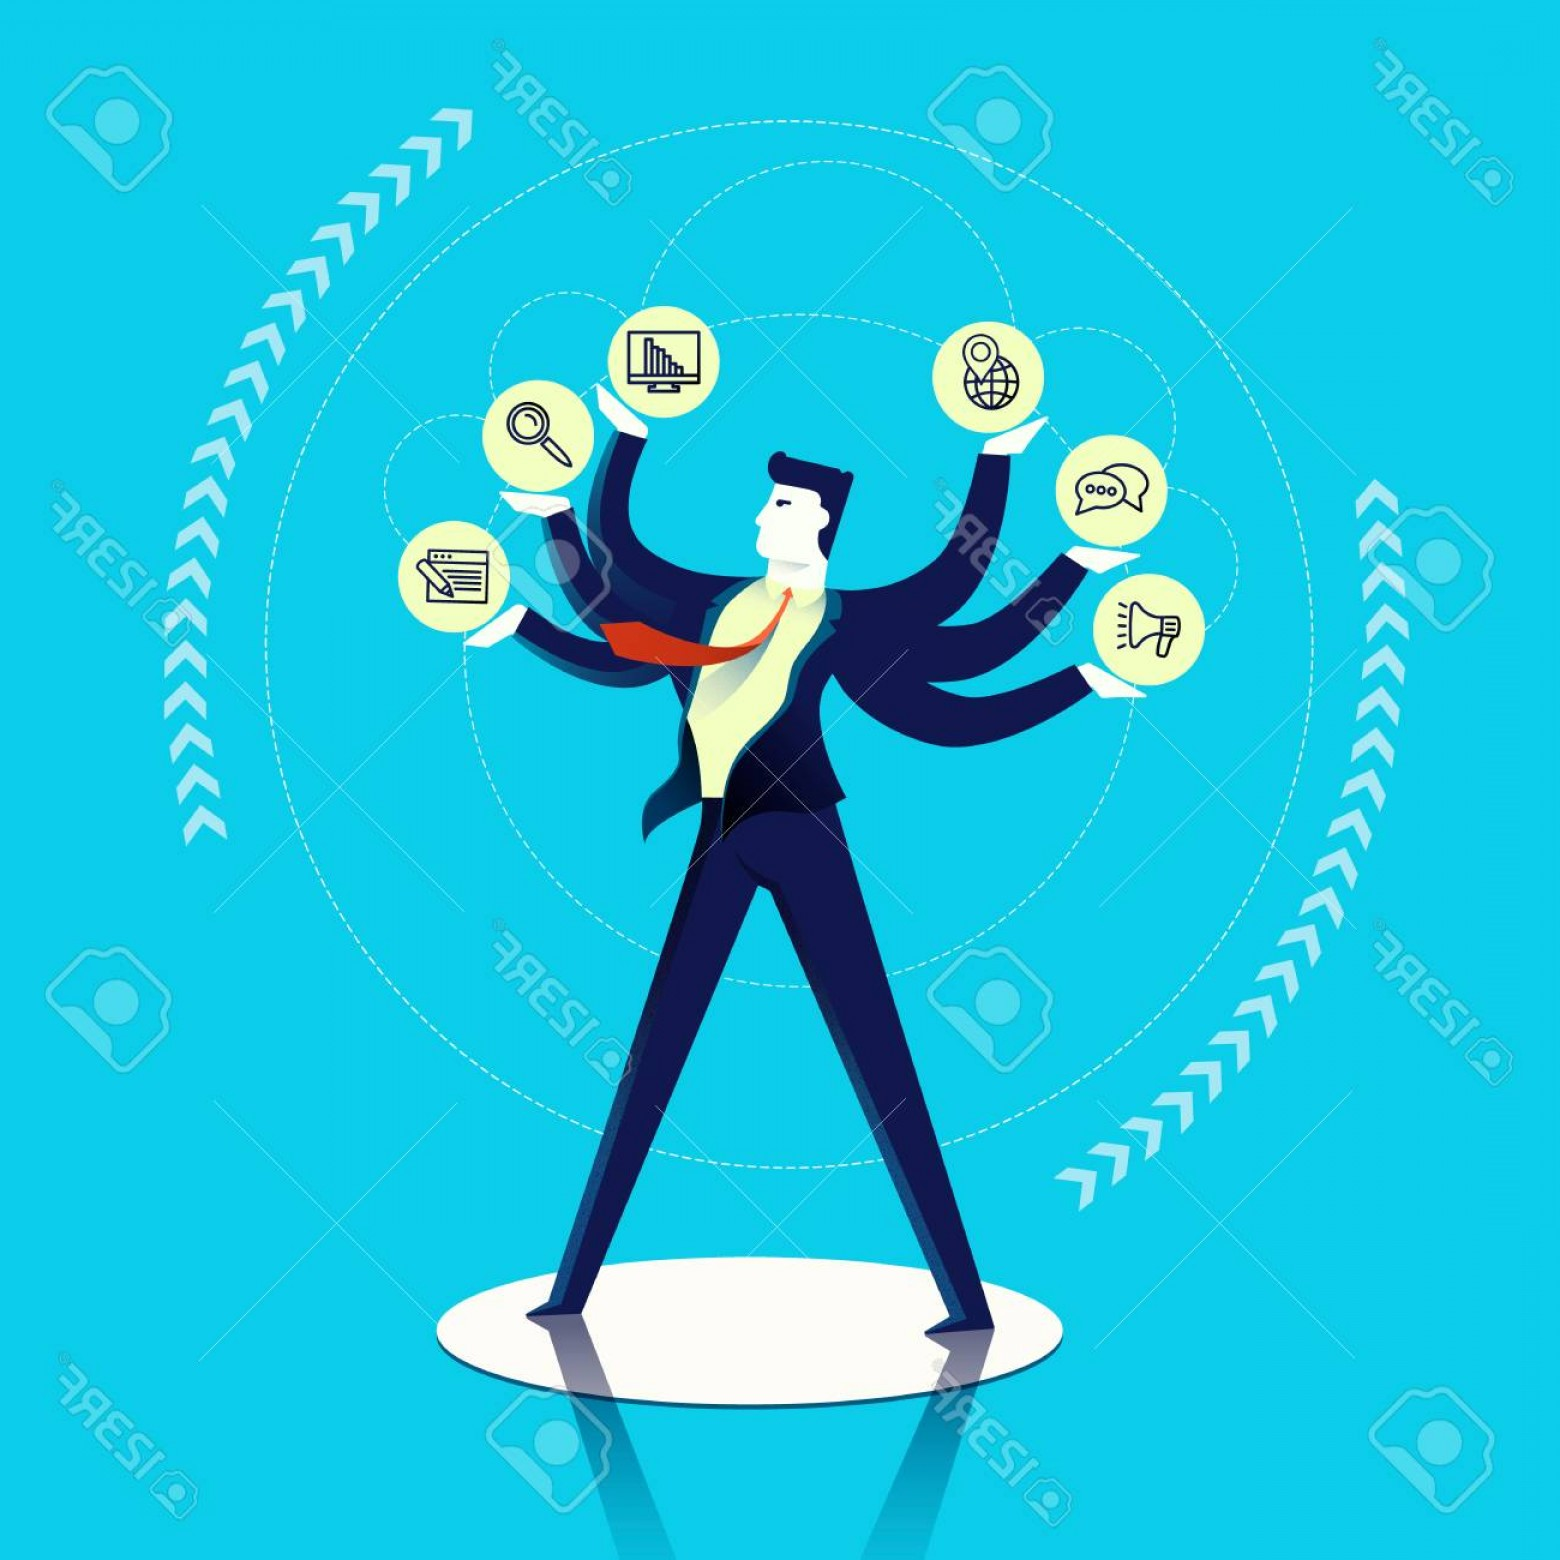 Vector Executive: Photostock Vector Business Multitask Concept Illustration Executive Man Juggling Different Work Skills As Outline Icon